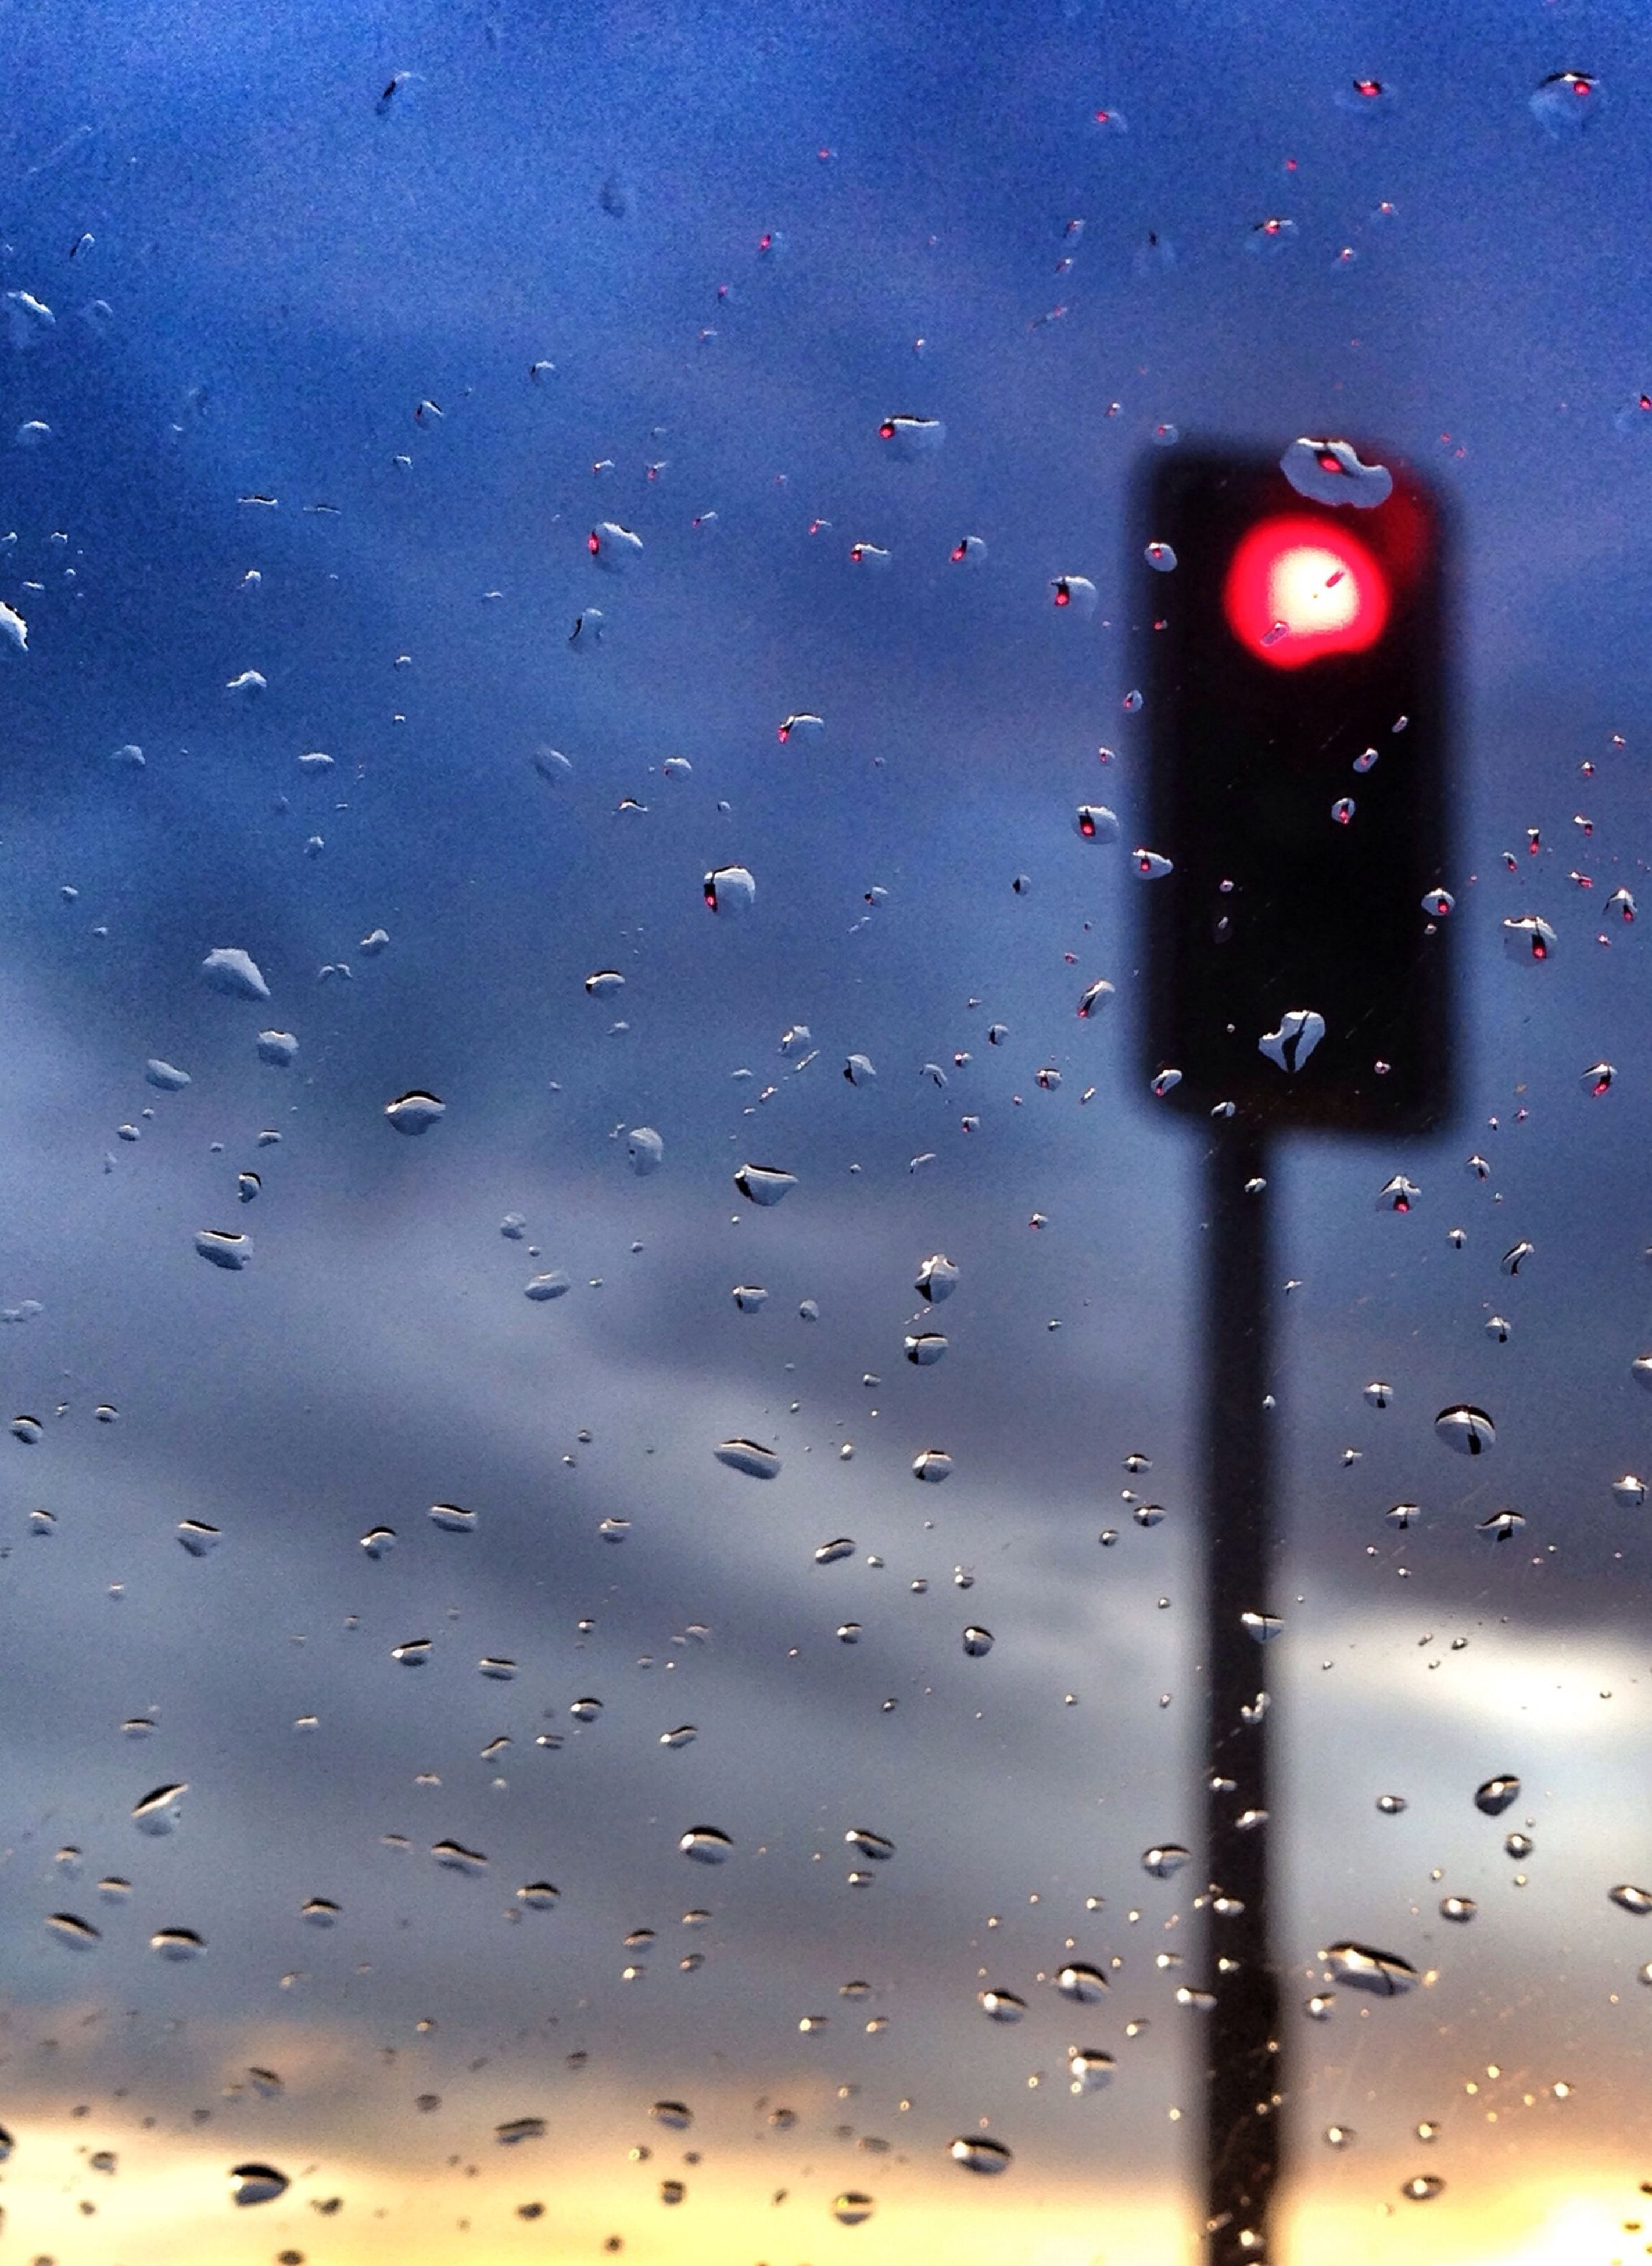 wet, drop, indoors, window, transportation, transparent, glass - material, rain, mode of transport, full frame, backgrounds, vehicle interior, close-up, weather, car, water, land vehicle, windshield, season, sky